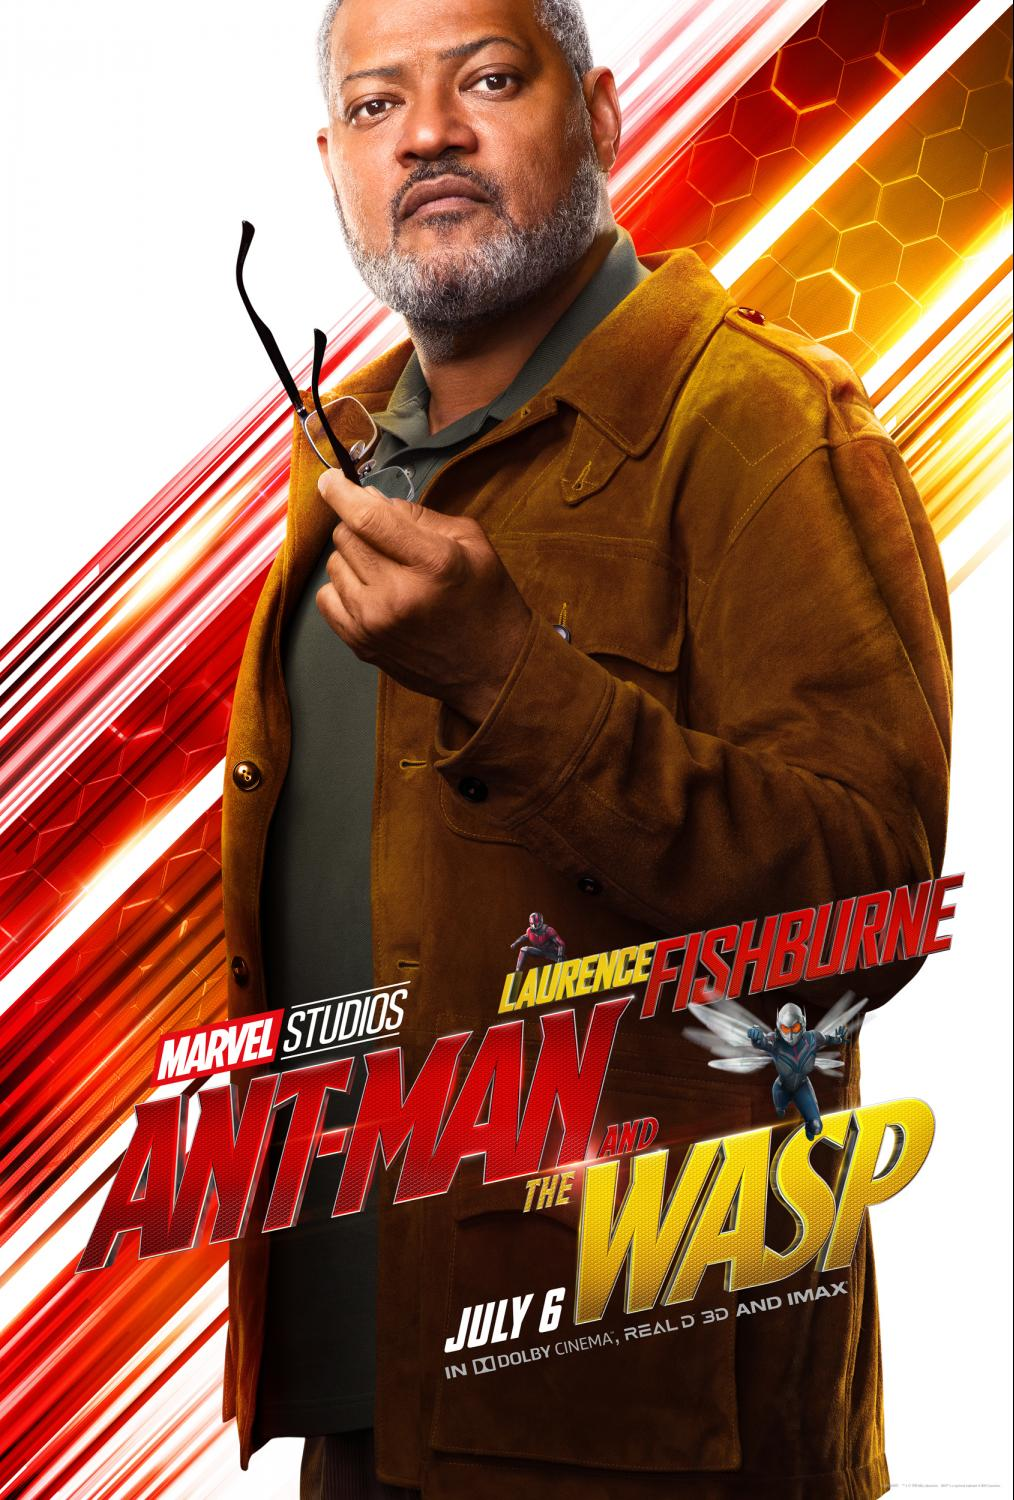 Talking with Laurence Fishburne about The Ant-Man and the Wasp - We discussed his character of Dr Bill Foster in the movie.